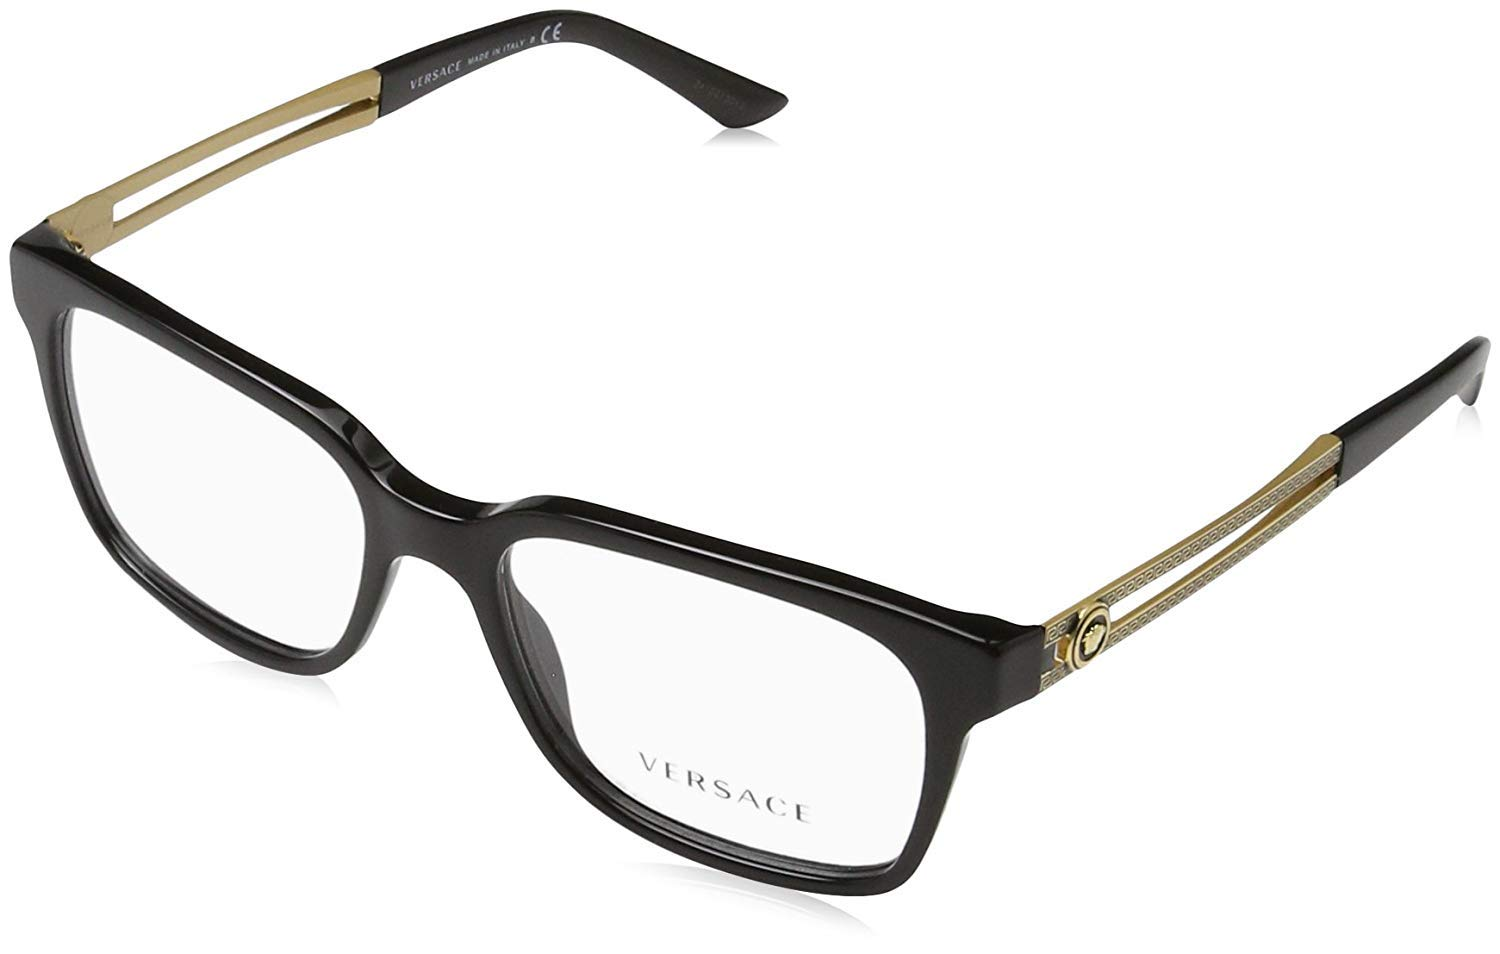 Eyeglasses Versace VE 3218 GB1 BLACK by Versace